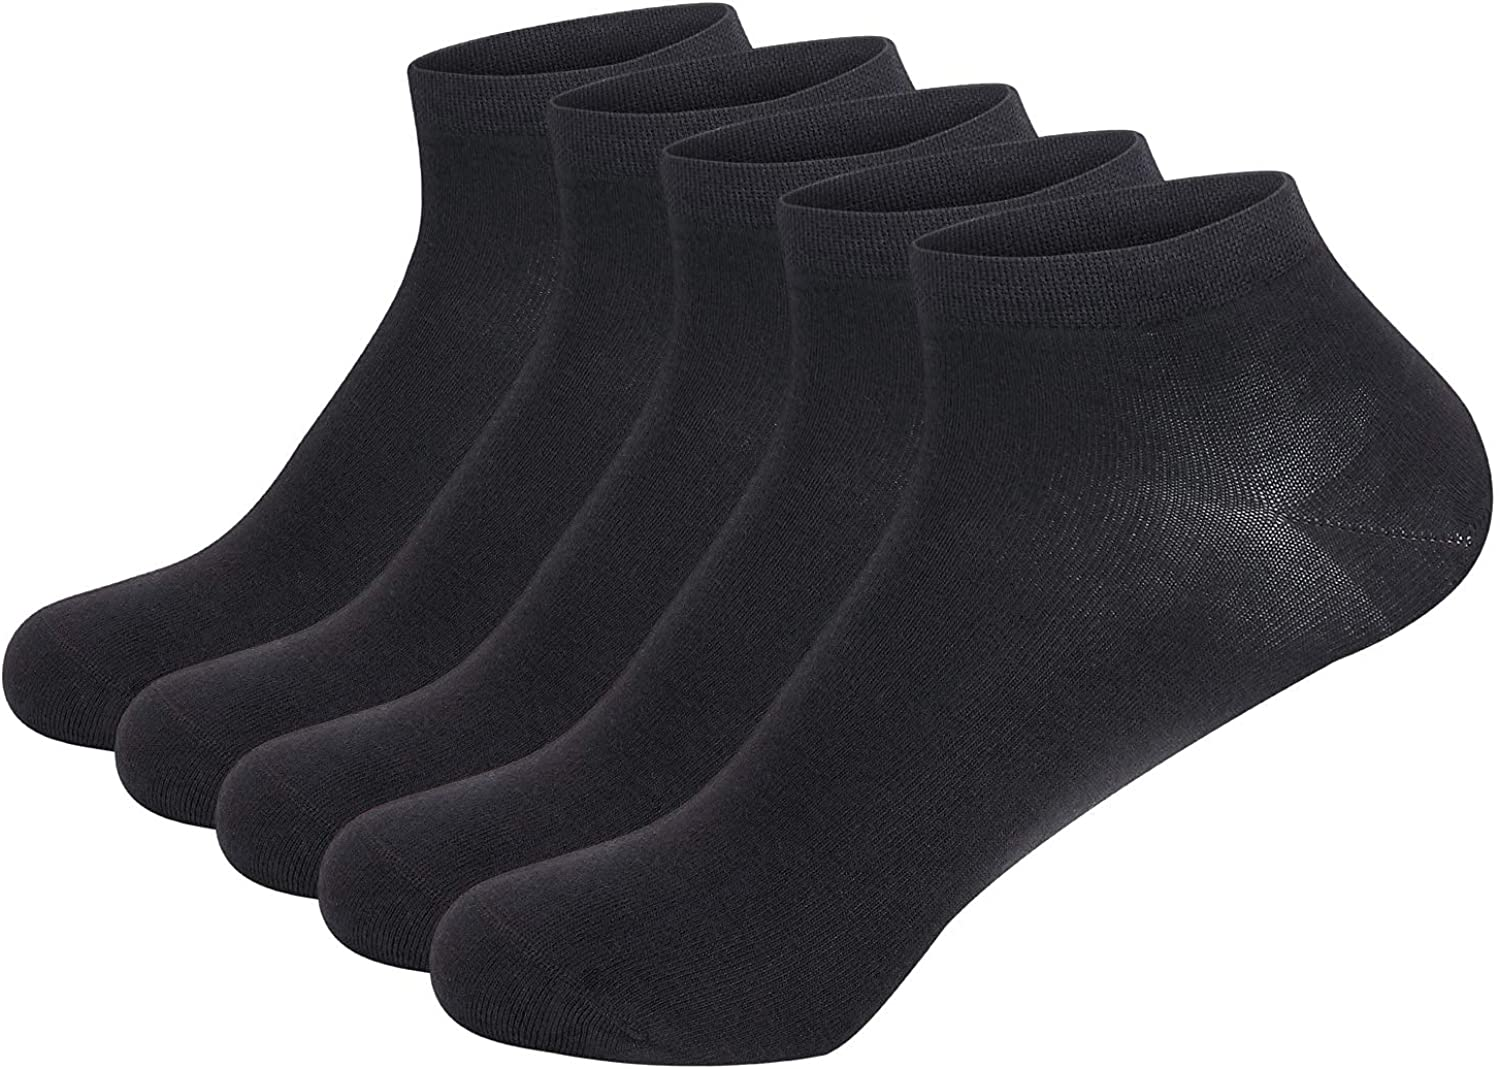 Women Bamboo Ankle Socks Ankle Length Thin Sock Odor Resistant Low Cut Sock 5 Pairs